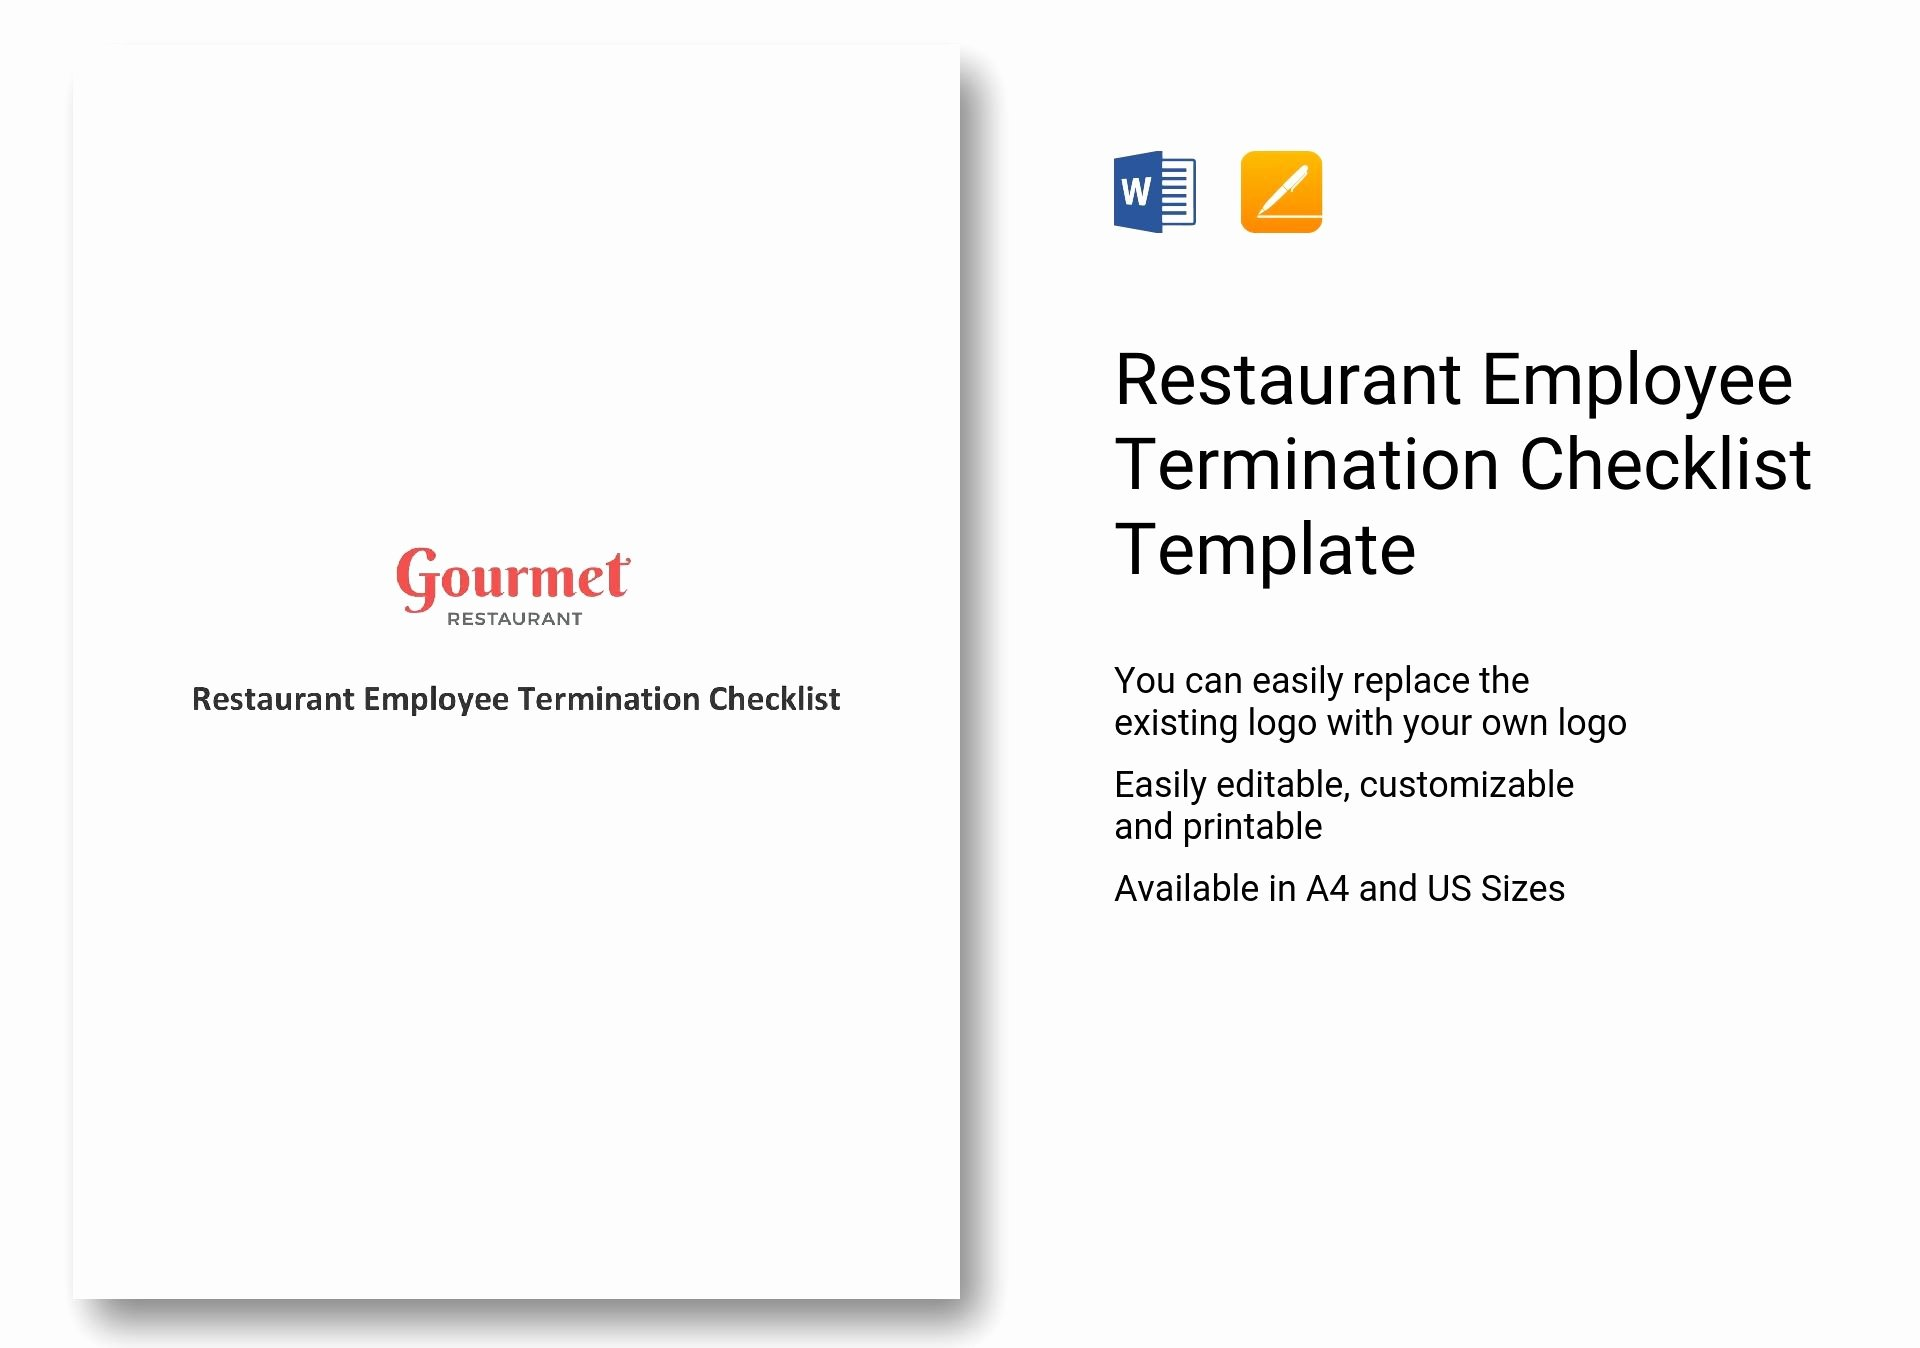 Employment Termination Checklist Template Inspirational Restaurant Employee Termination Checklist Template In Ms